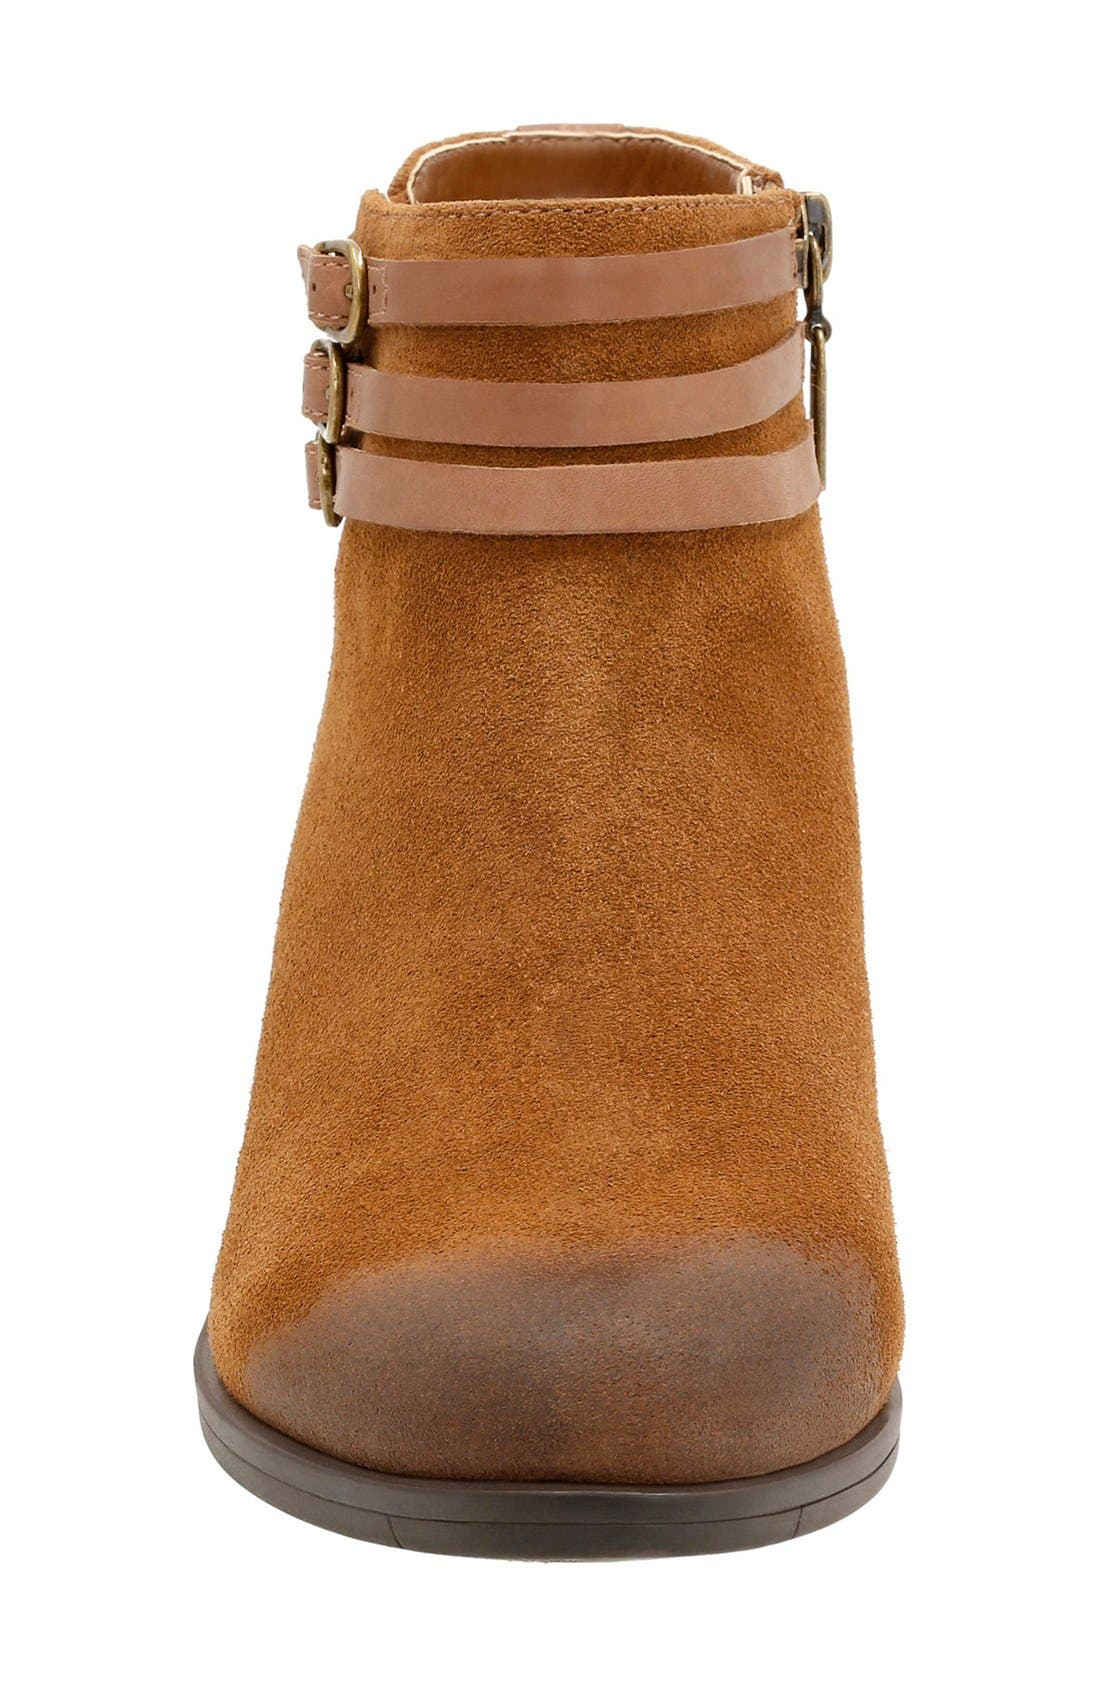 'Gelata Siena' Ankle Boot,                             Alternate thumbnail 3, color,                             215